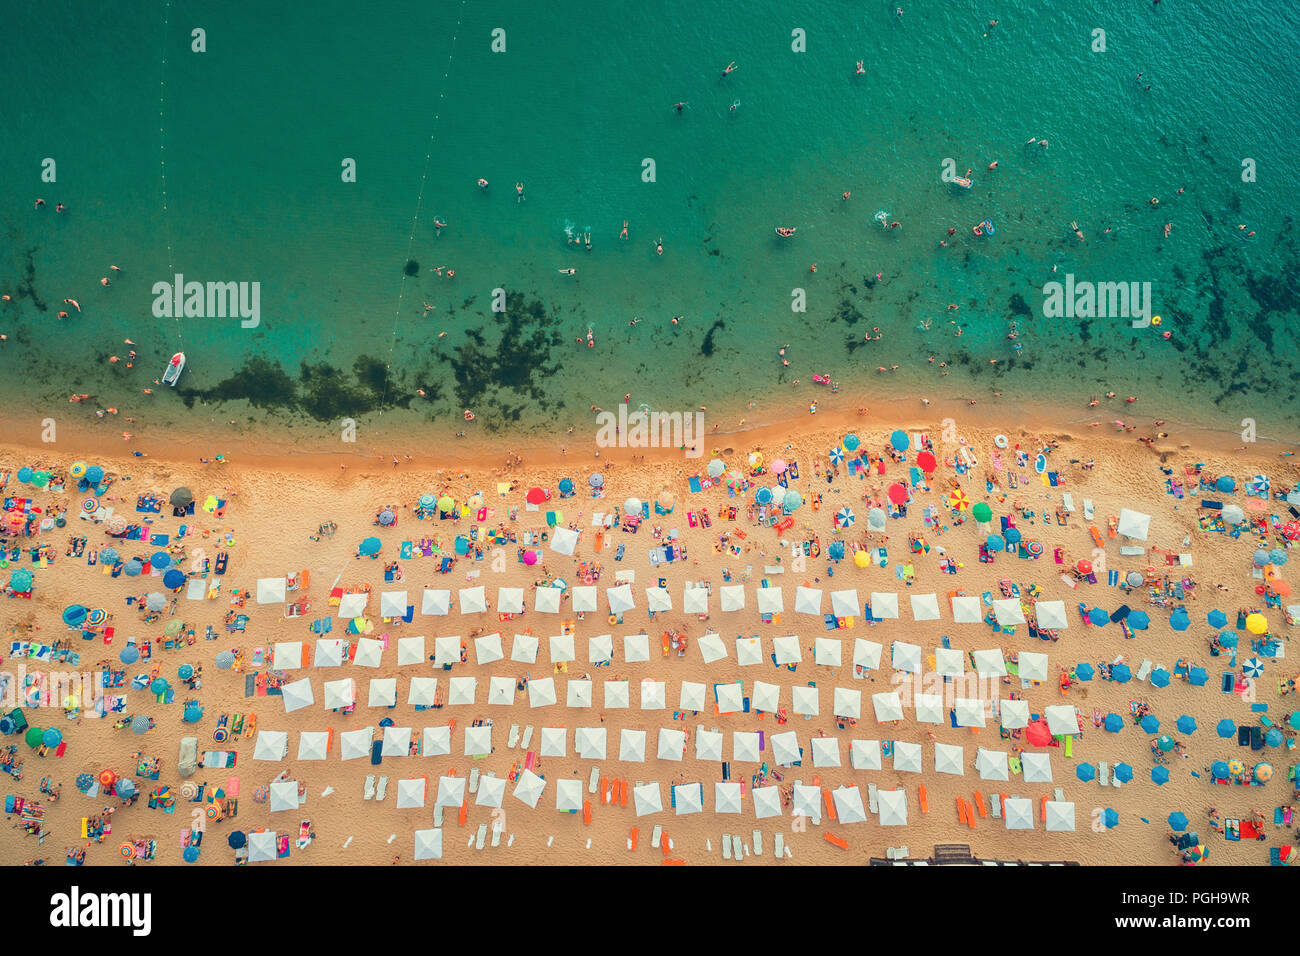 Aerial top view on the beach. People, umbrellas, sand and sea waves - Stock Image